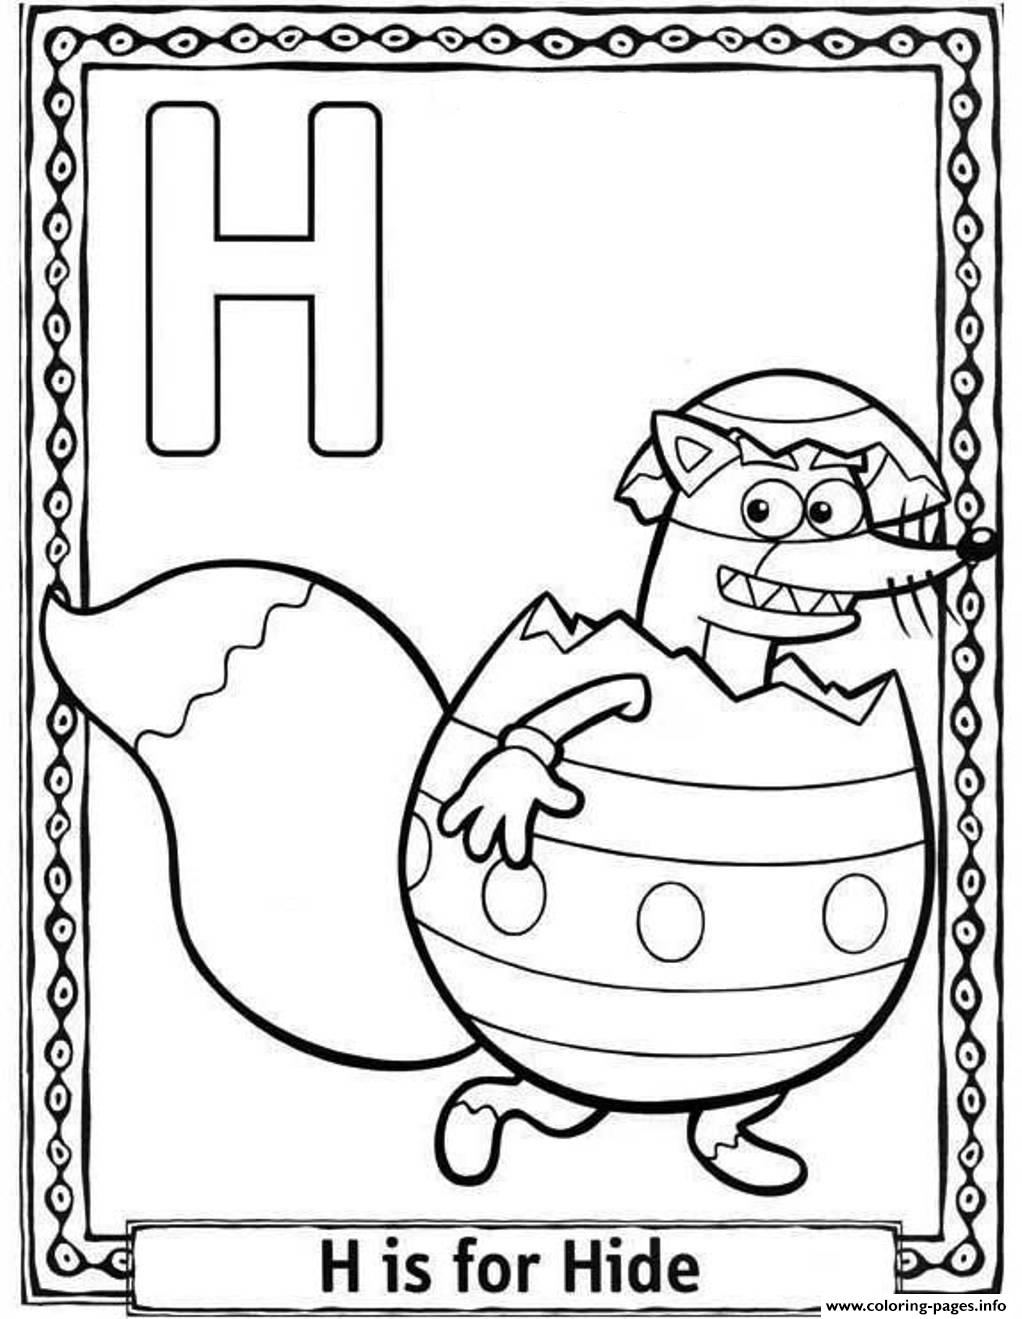 Dora Cartoon H Is For Hide Alphabet 9b64 coloring pages